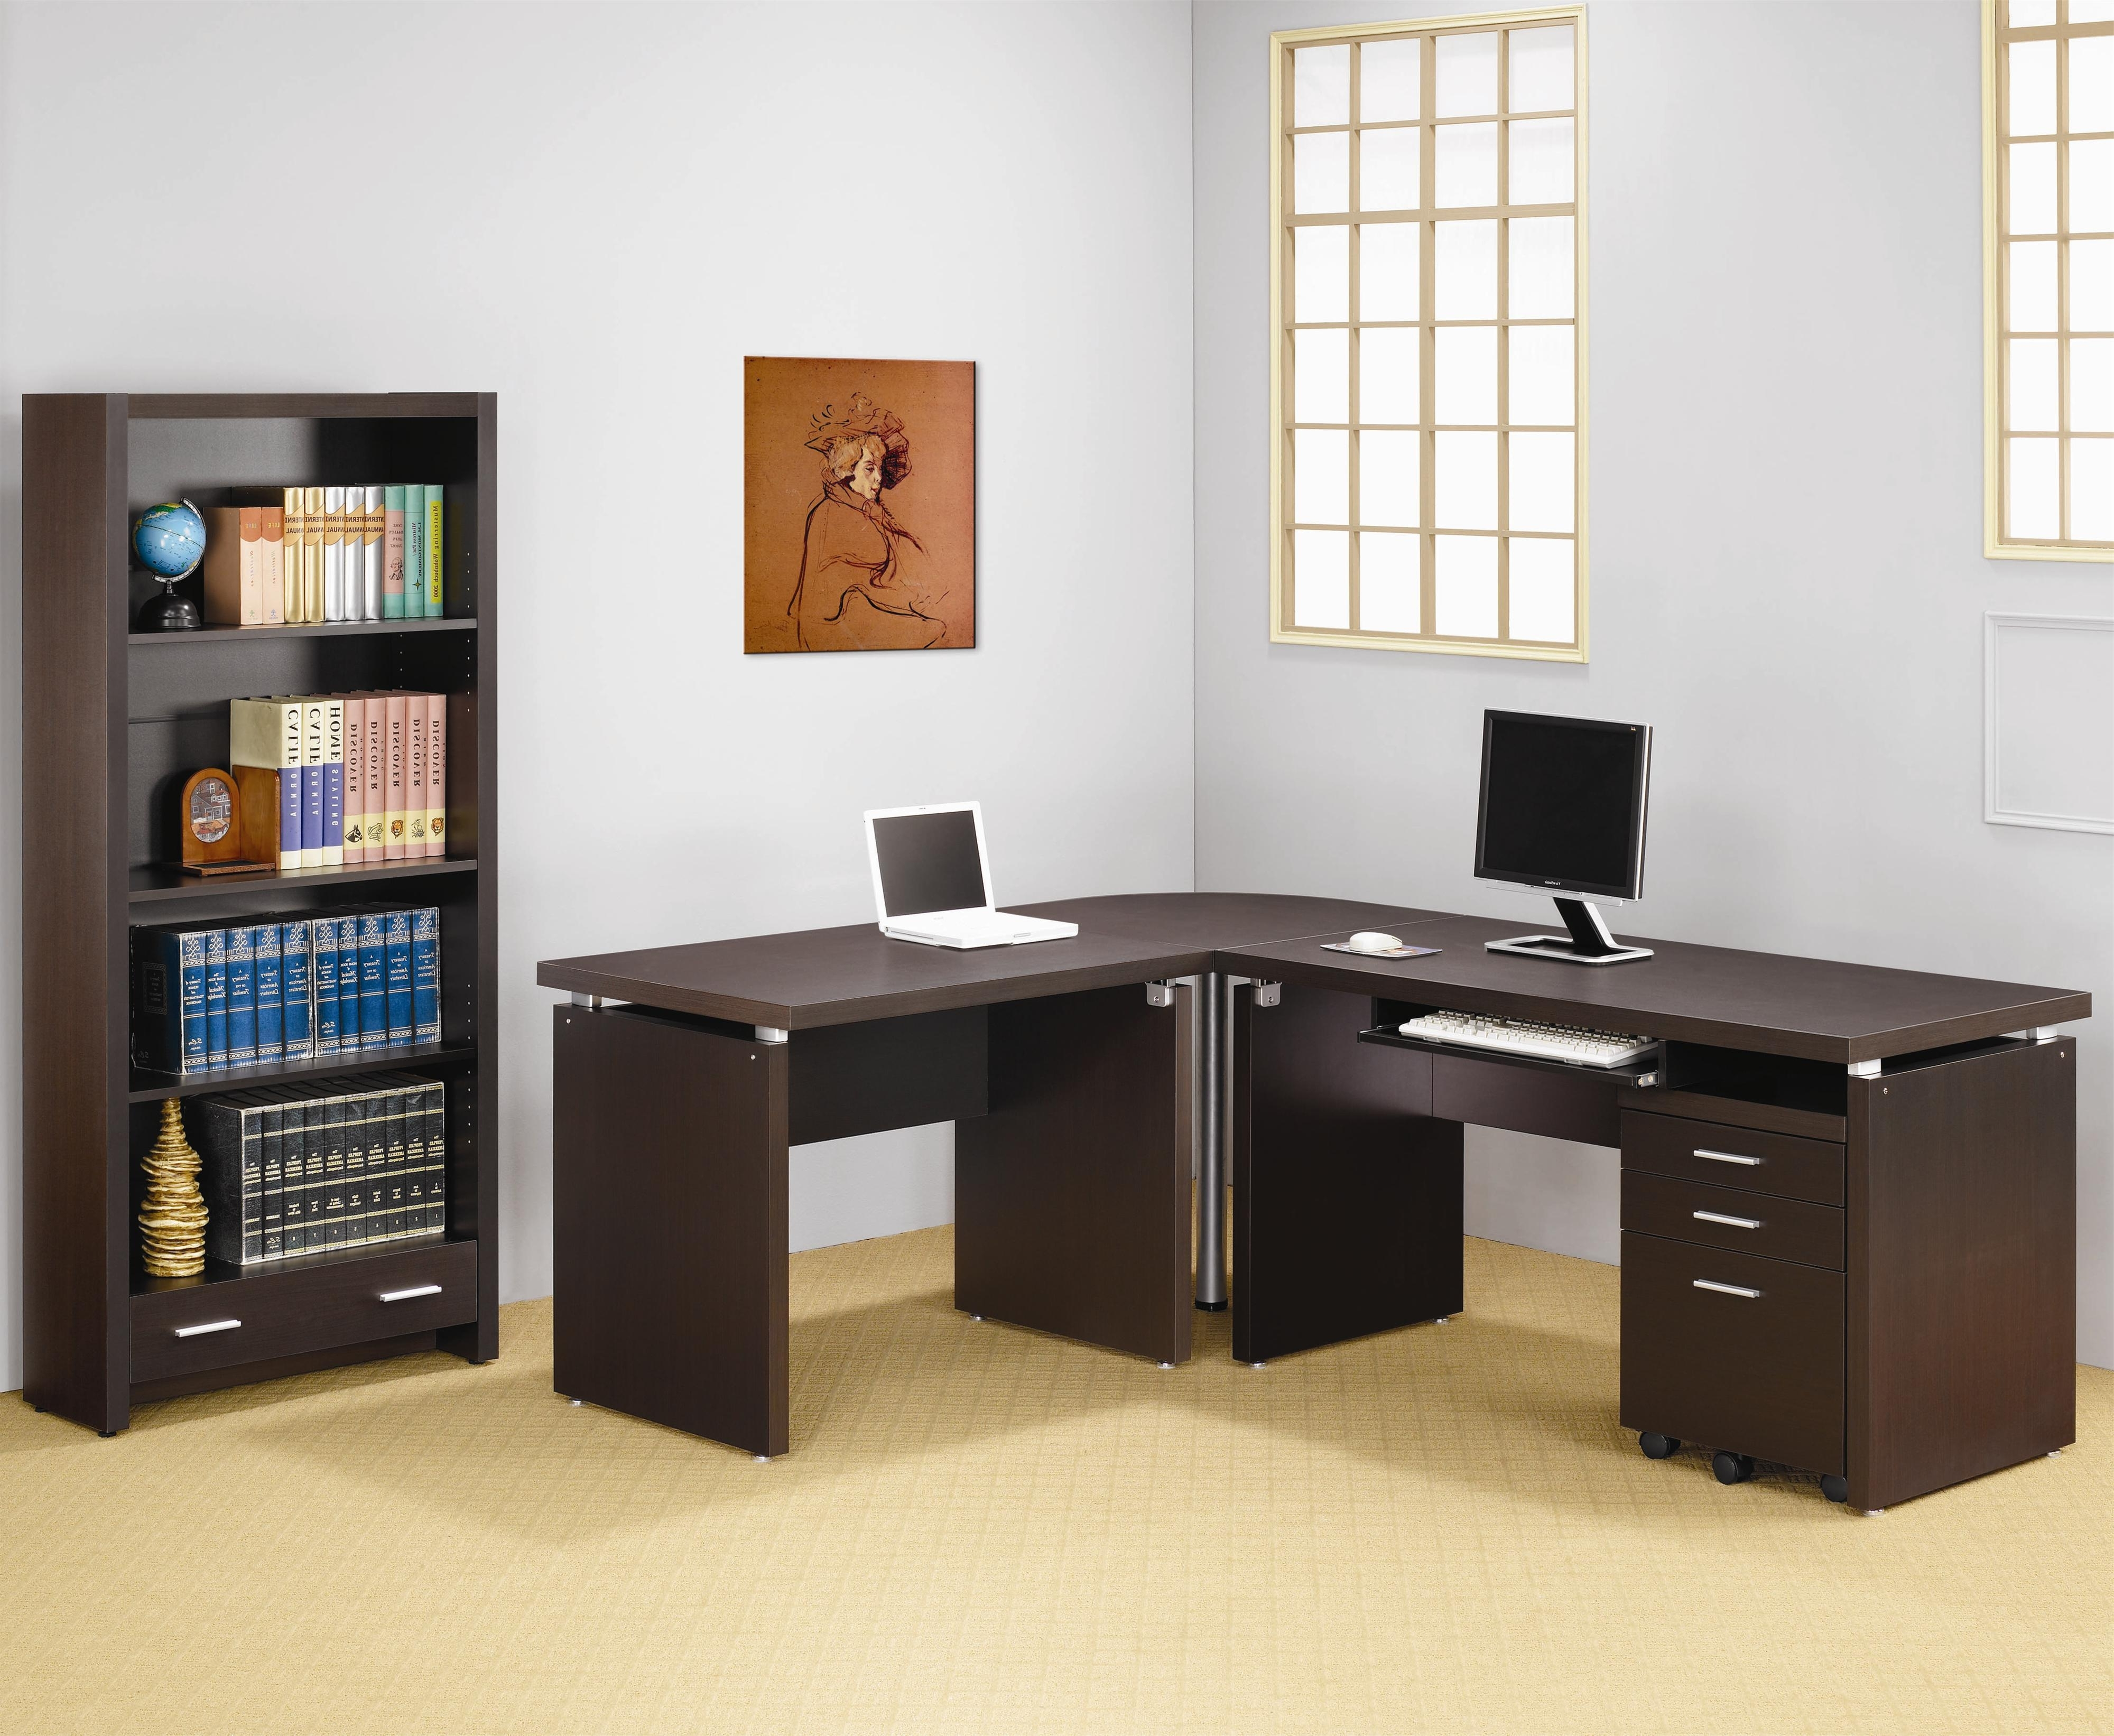 2018 Computer Desks For Bedrooms Inside Numerable Variety Of L Shaped Computer Desk – Bellissimainteriors (View 1 of 20)